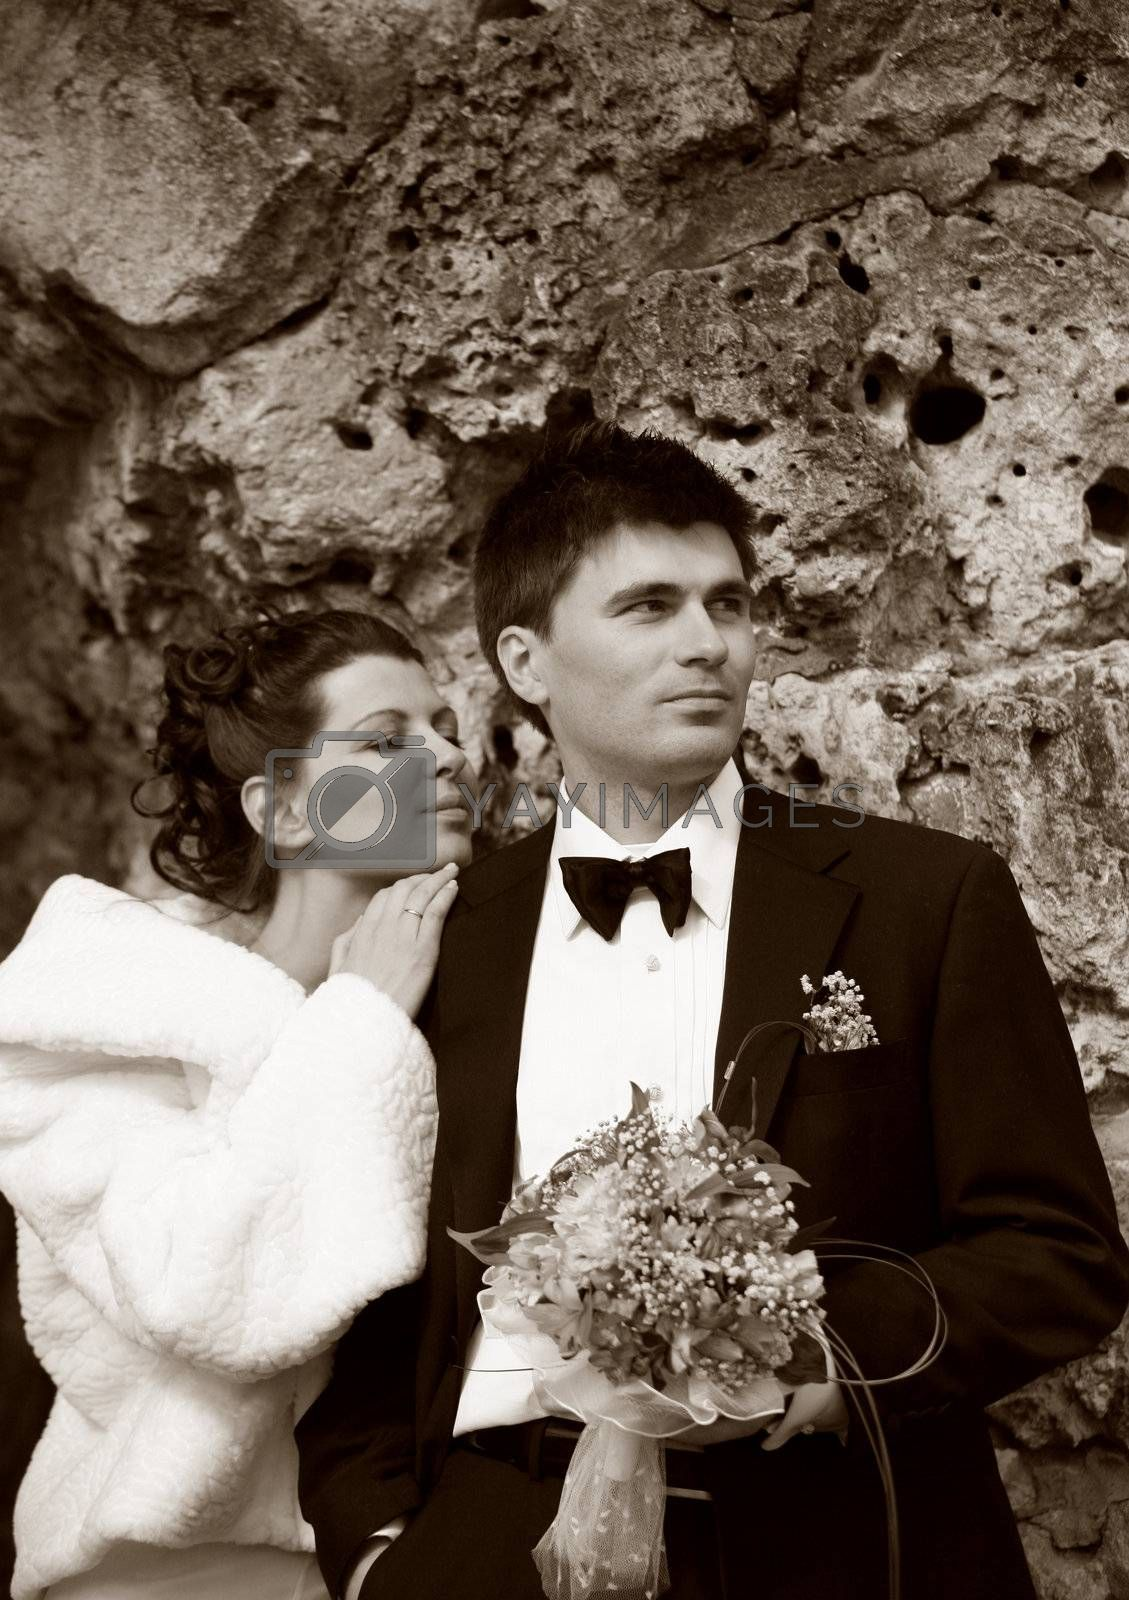 Recently married pair on a background of a stone. b/w+sepia